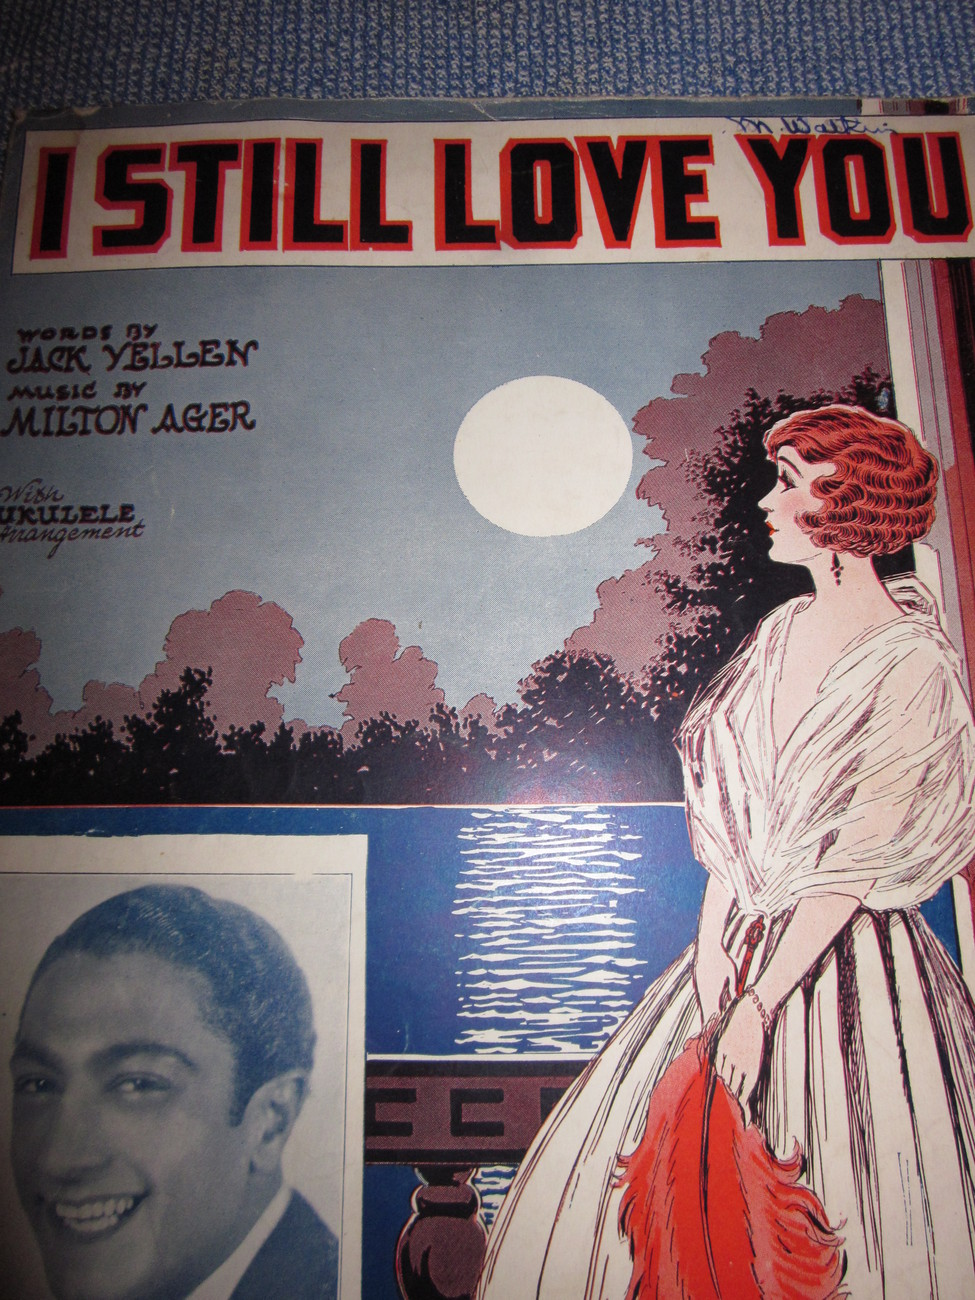 Vintage Sheet Music I Still Love You a Billy Snyder Arrangement 1928